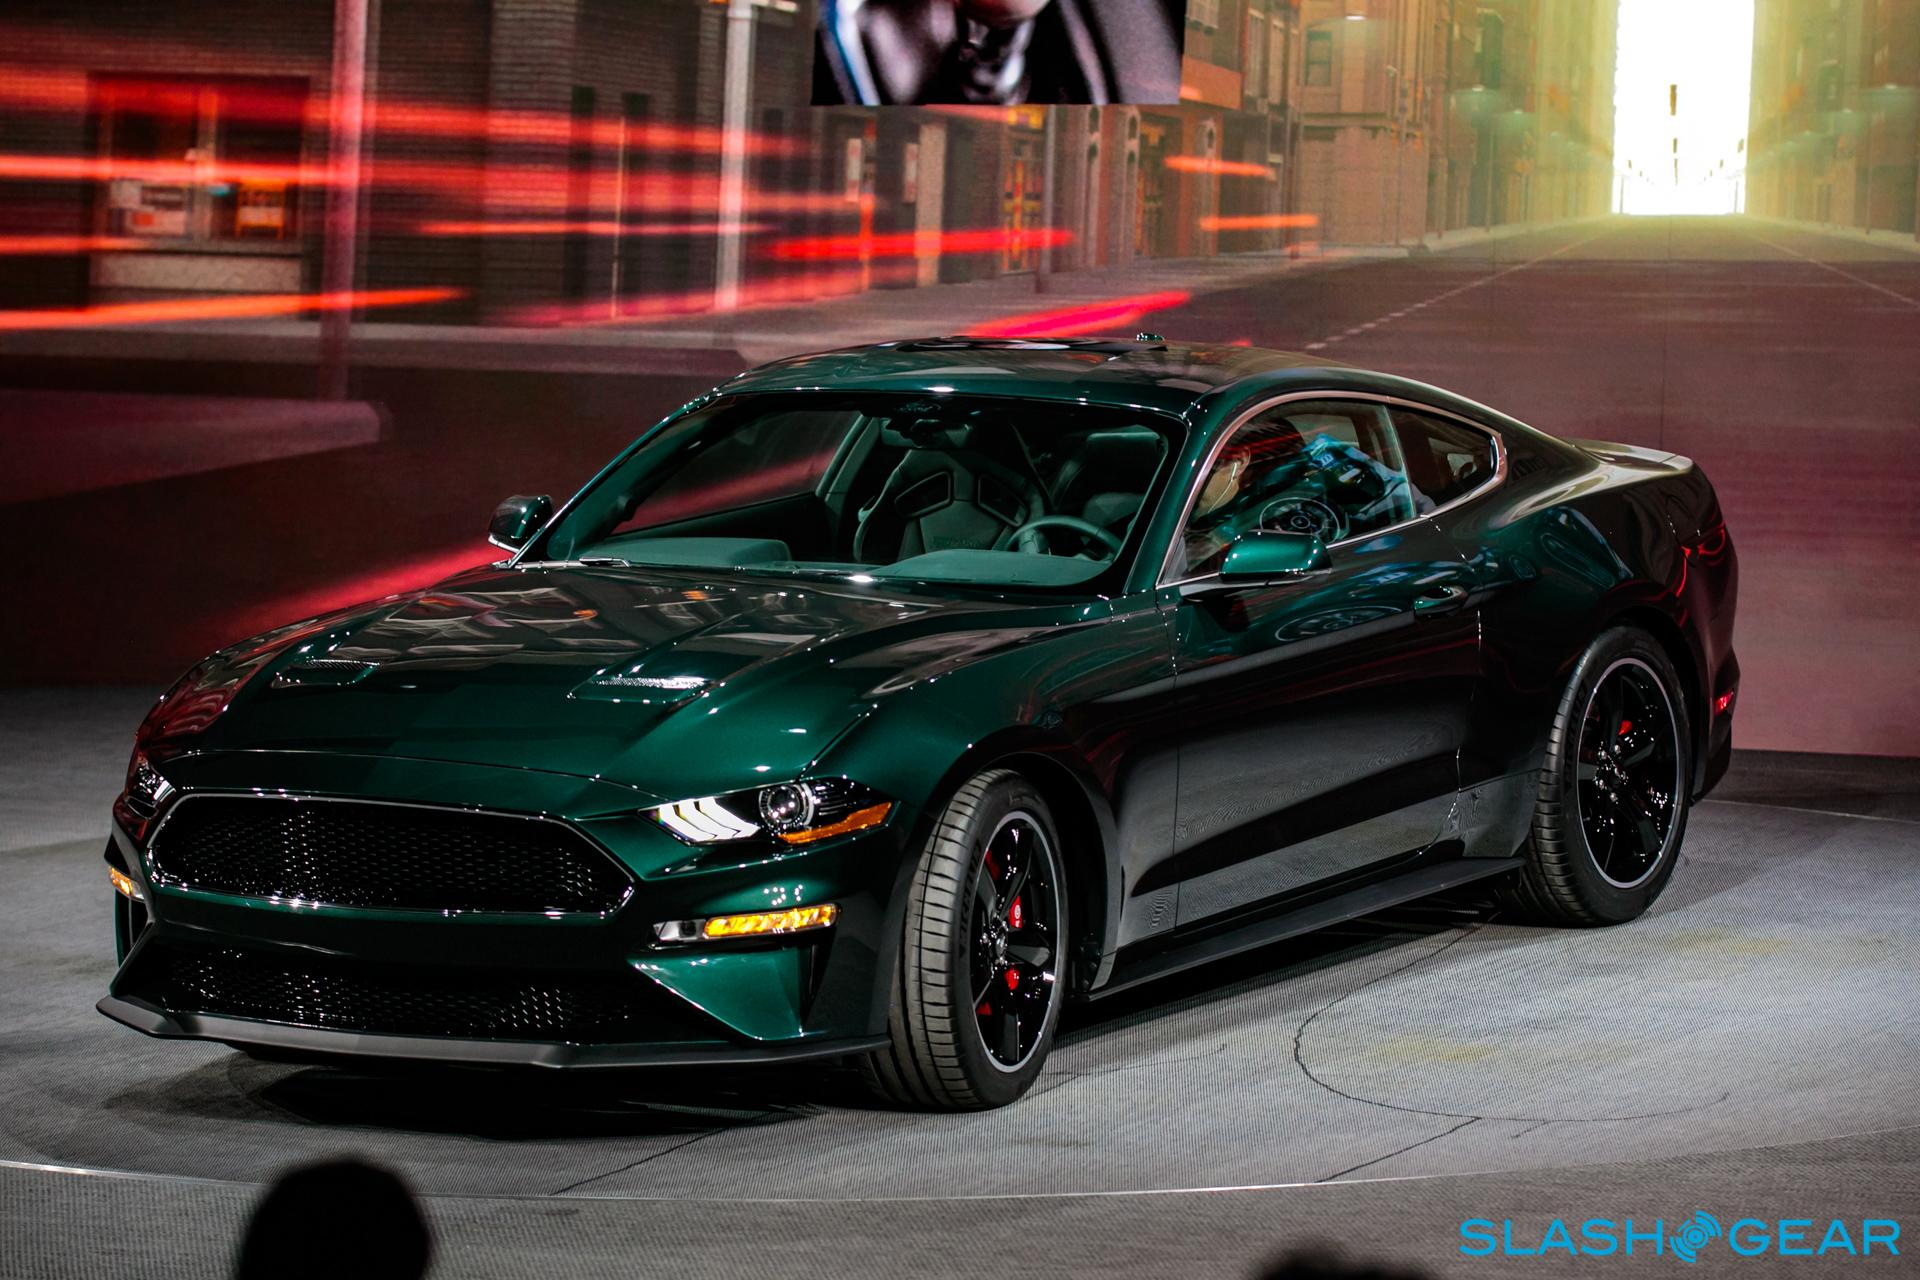 Ford Mustang Hybrid reportedly not coming until 2023 redesign